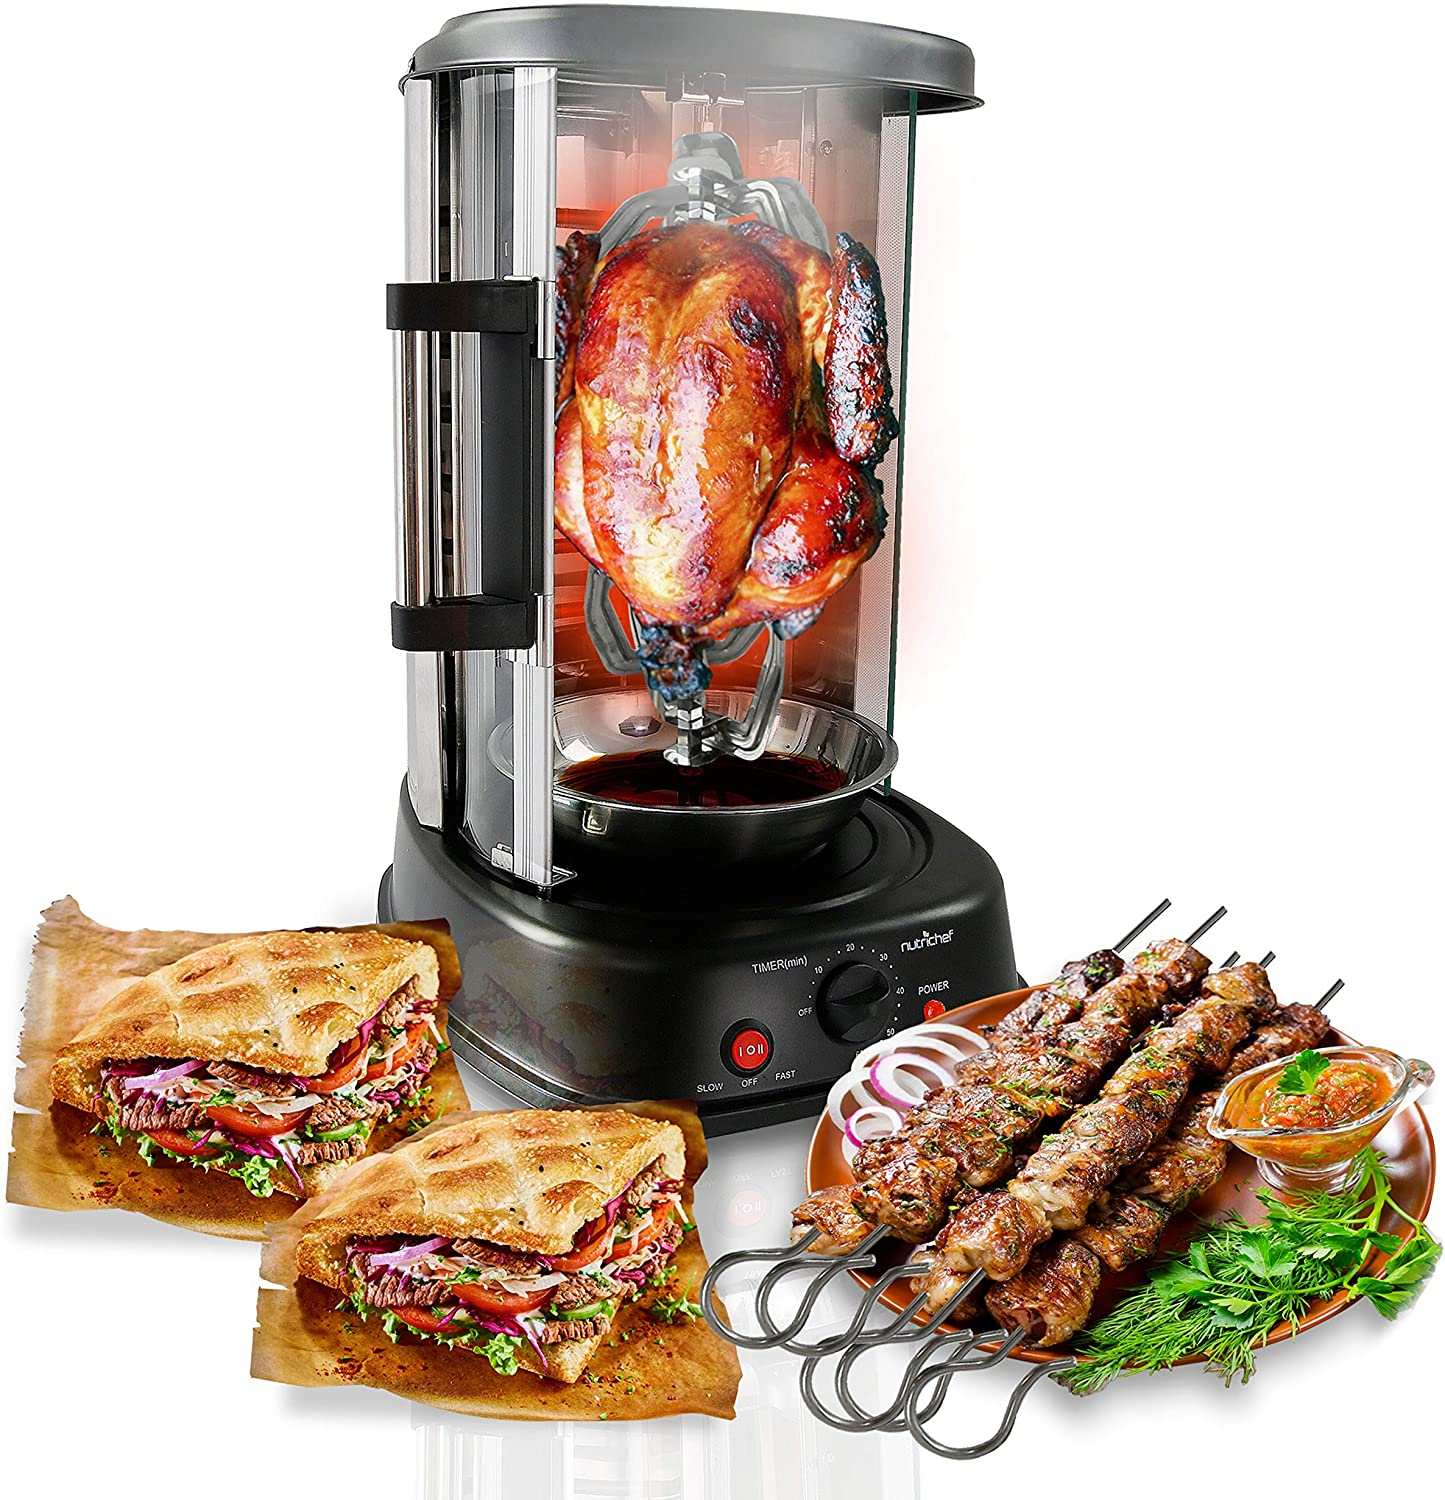 NutriChef Vertical Rotating Oven - Rotisserie